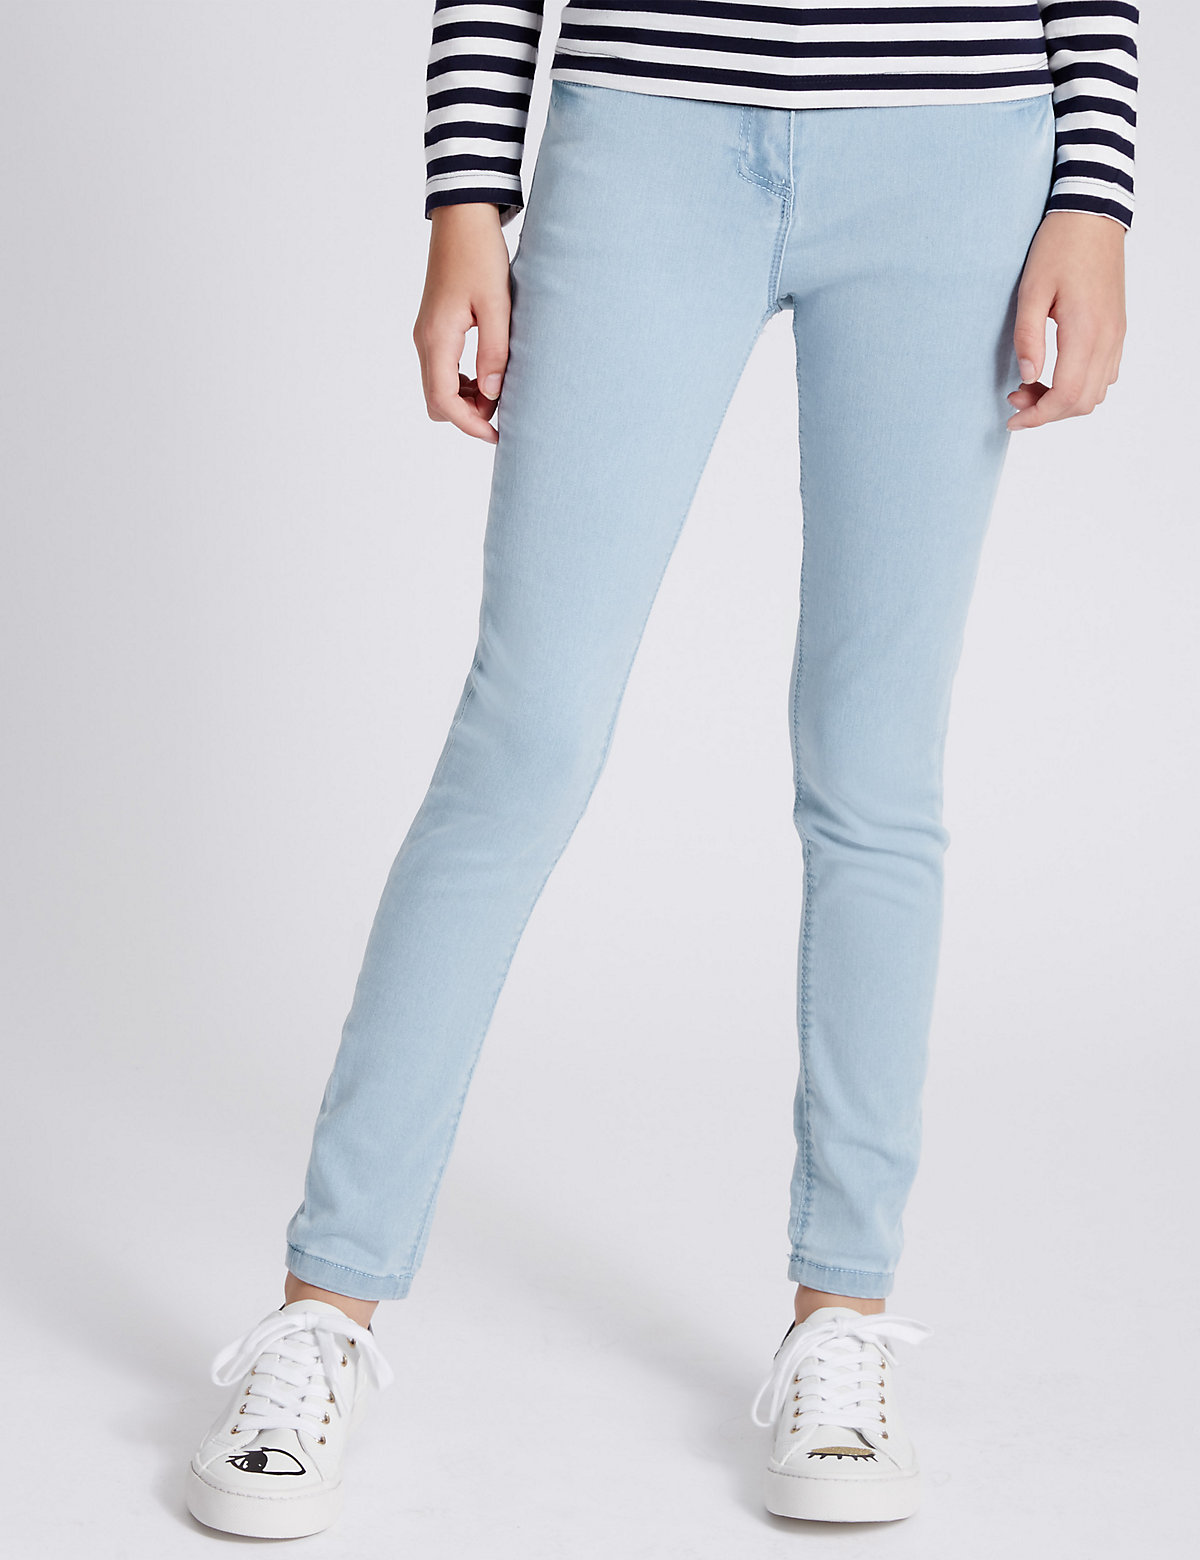 Cotton Blend Adjustable waist Skinny Jeans (3-14 years)